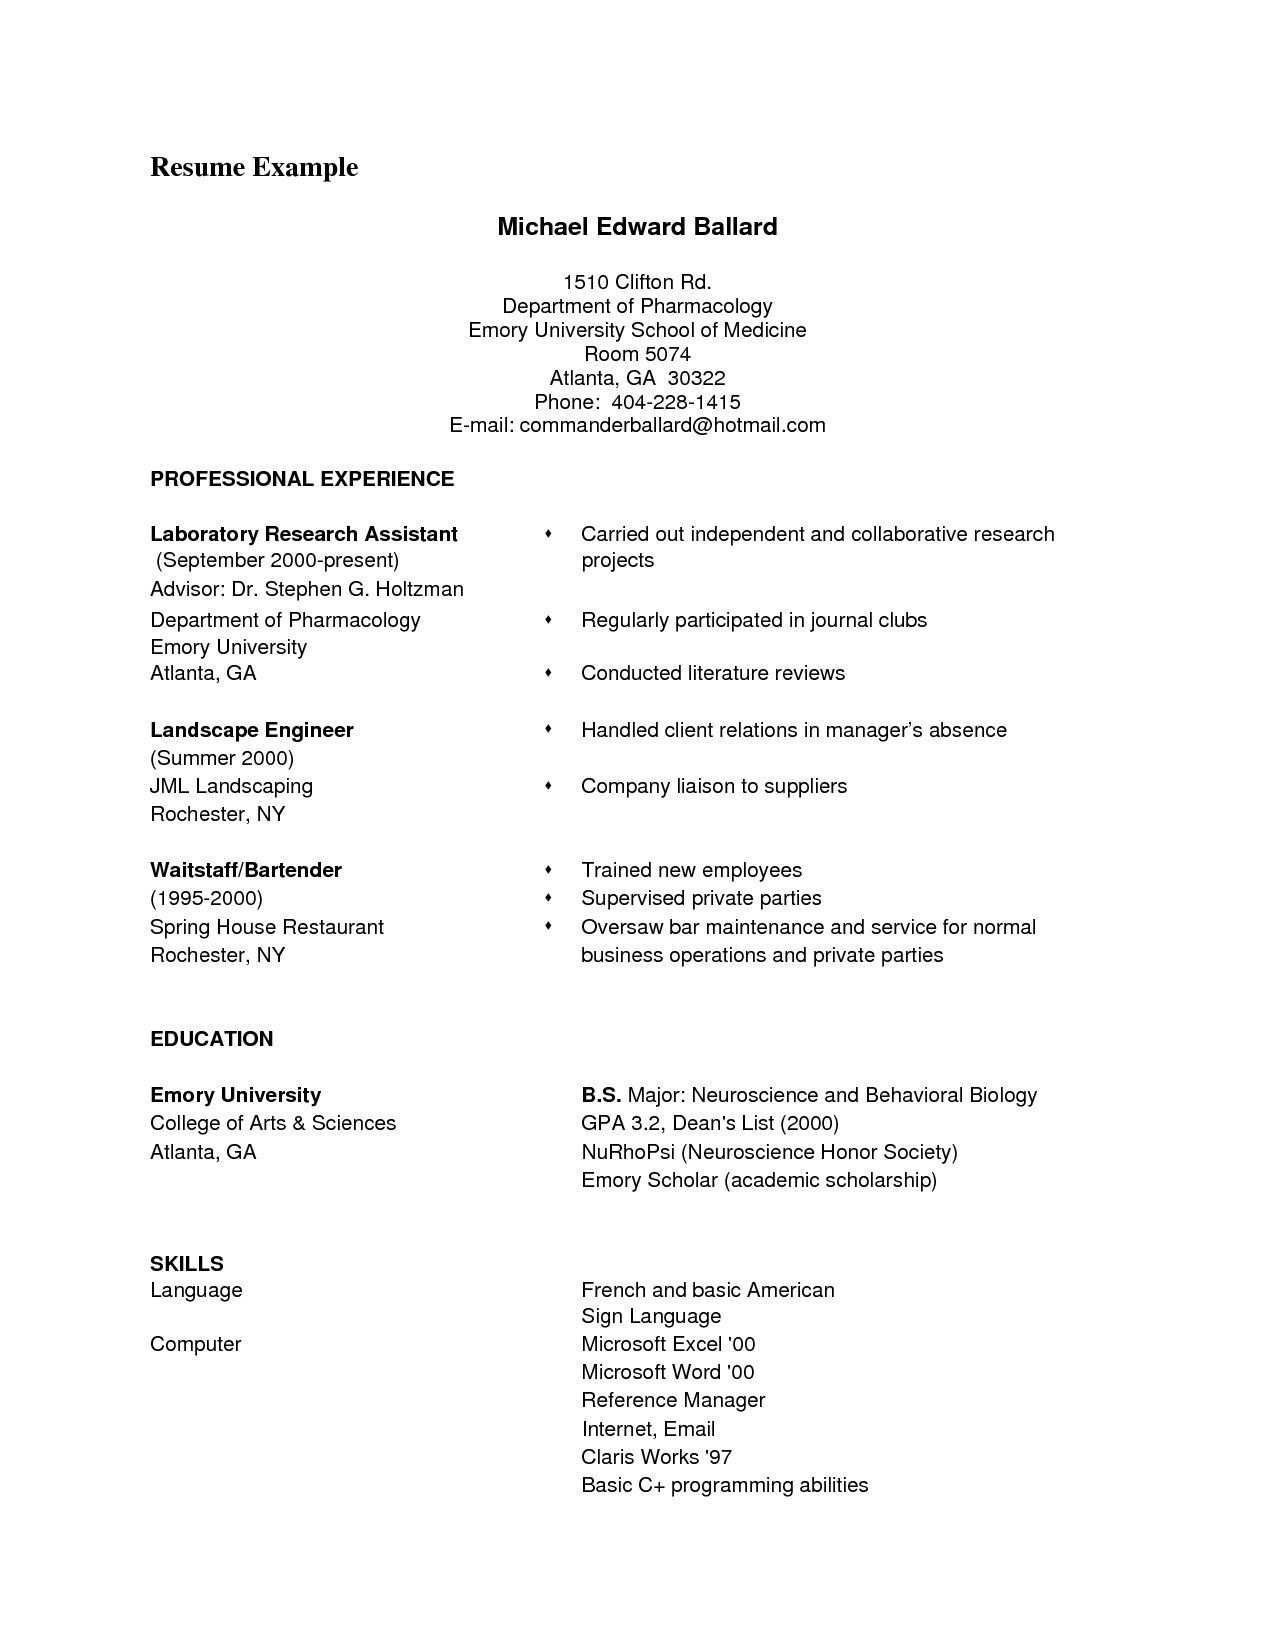 Scientist Resume Template - Classic Resume Templates ¢Ë†Å¡ Powerpoint Templates for Biology New